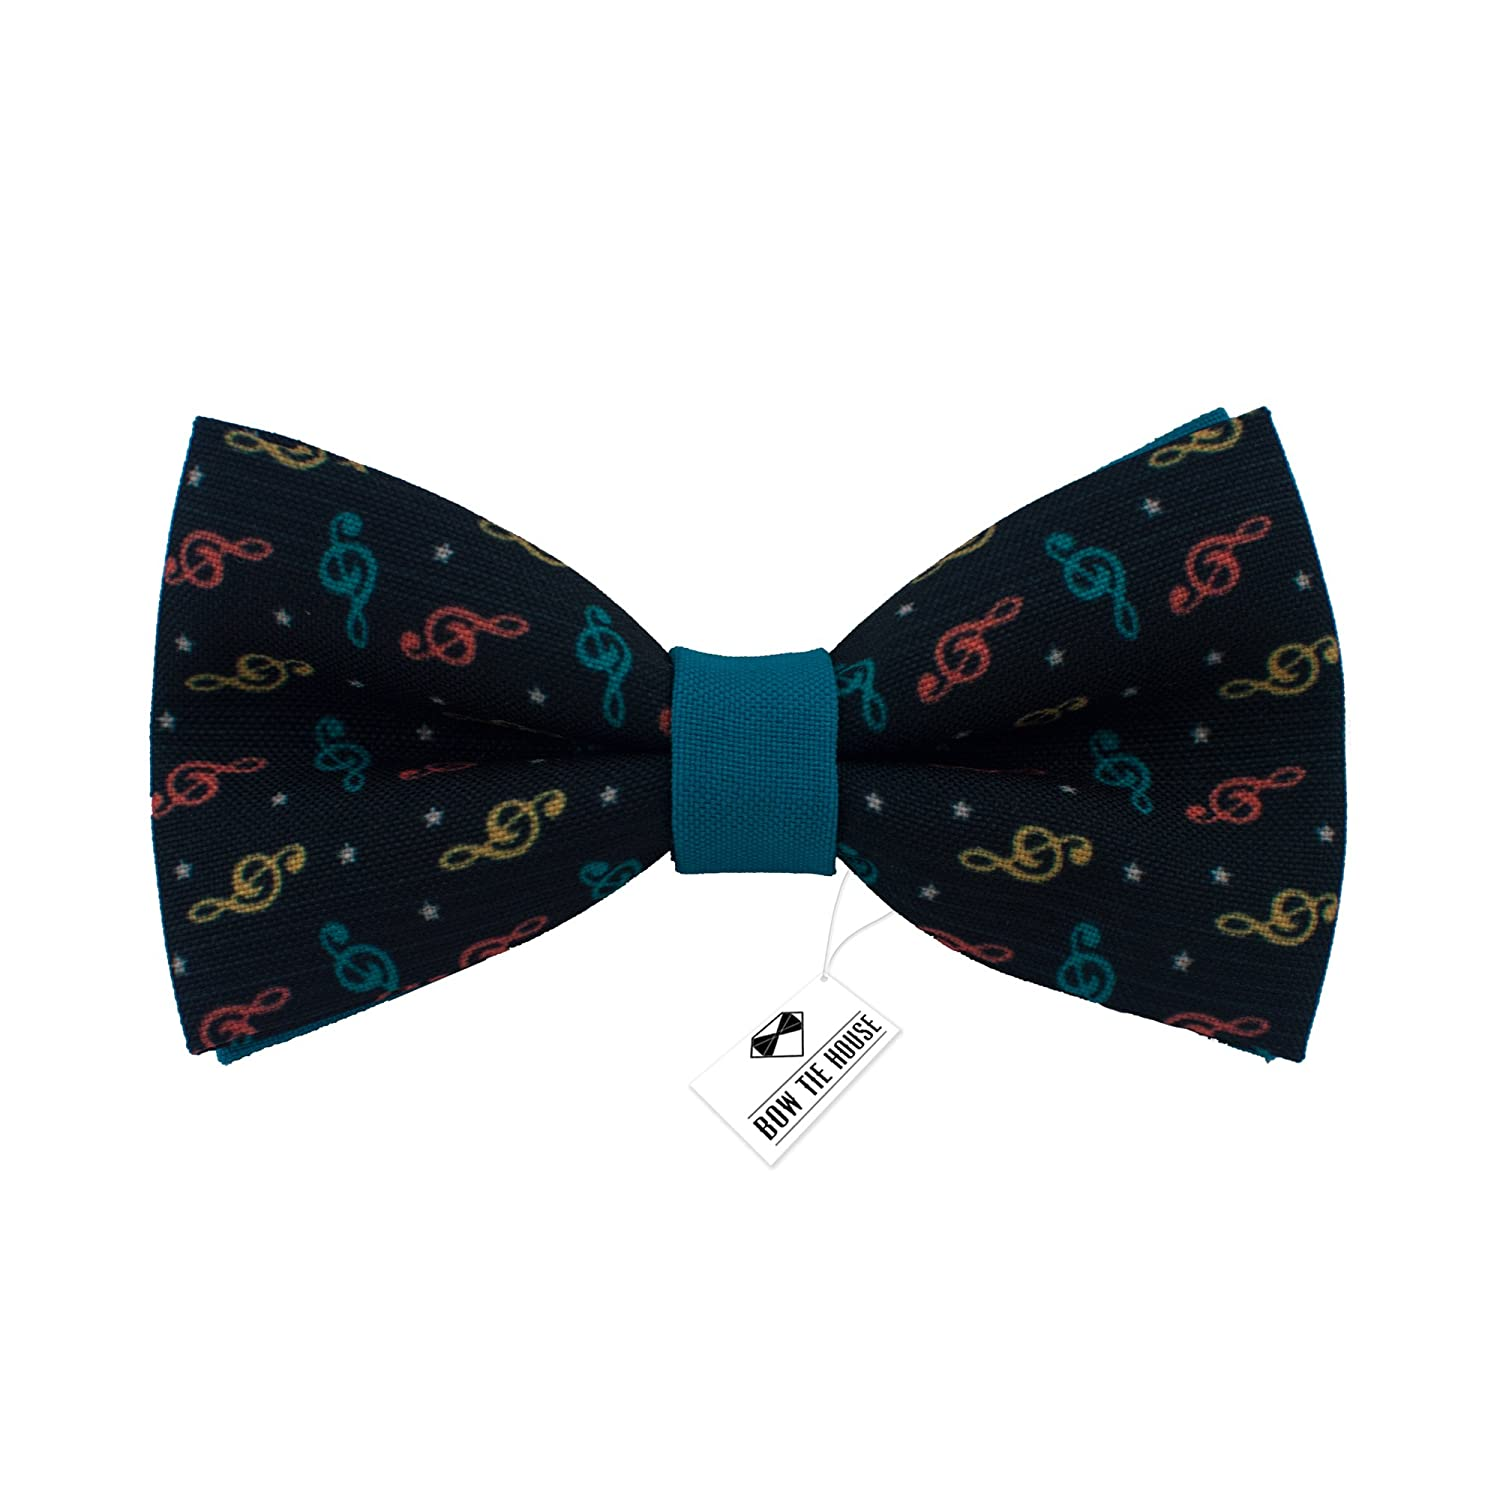 Bow Tie House Musical bow ties pre-tied pattern in Many colors Medium, Notes Brown